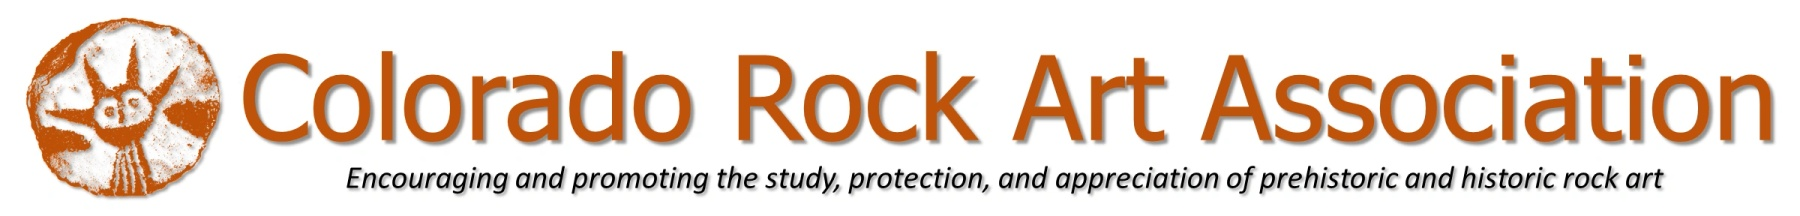 Colorado Rock Art Association